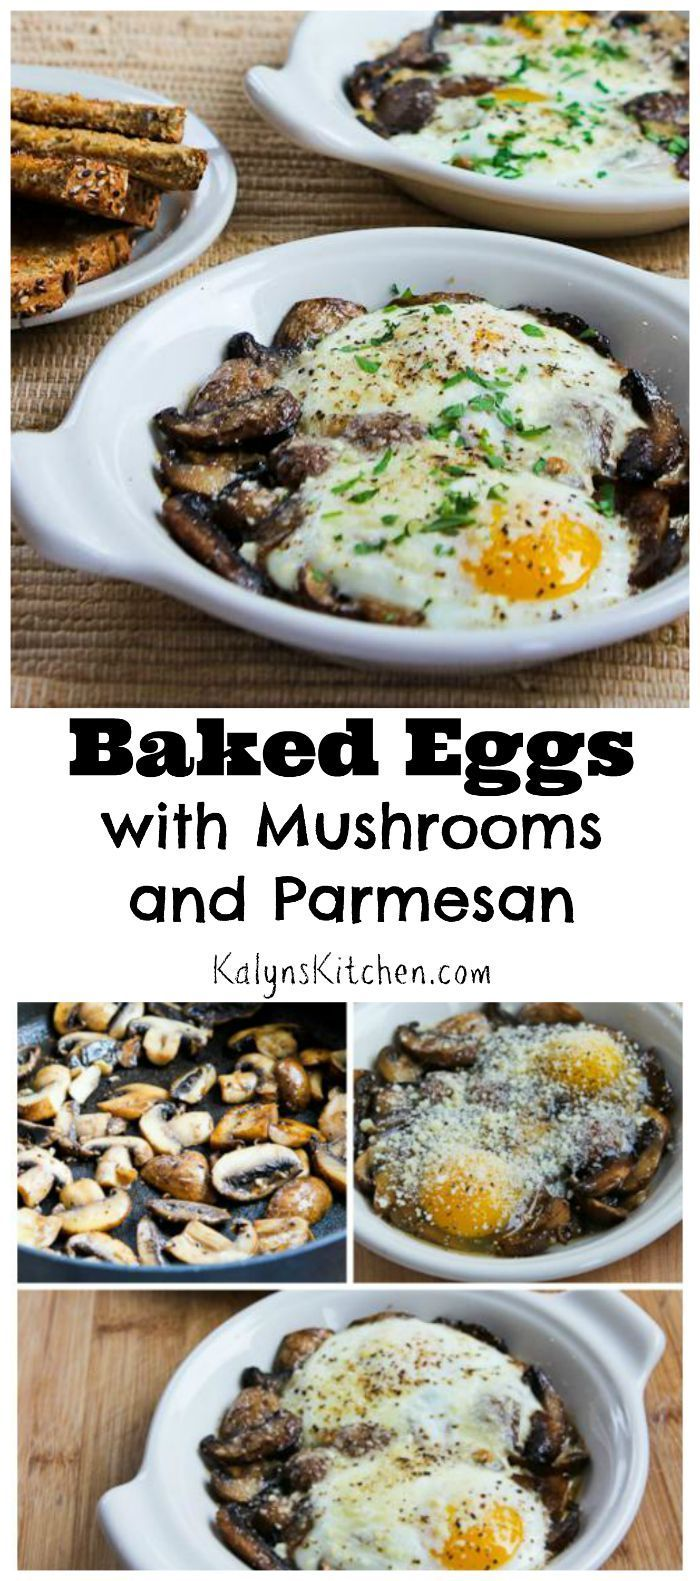 Recipe For Baked Eggs With Mushrooms And Parmesan Are Seriously Delicious This Easy Breakfast Is Low Carb South Beach T Friend